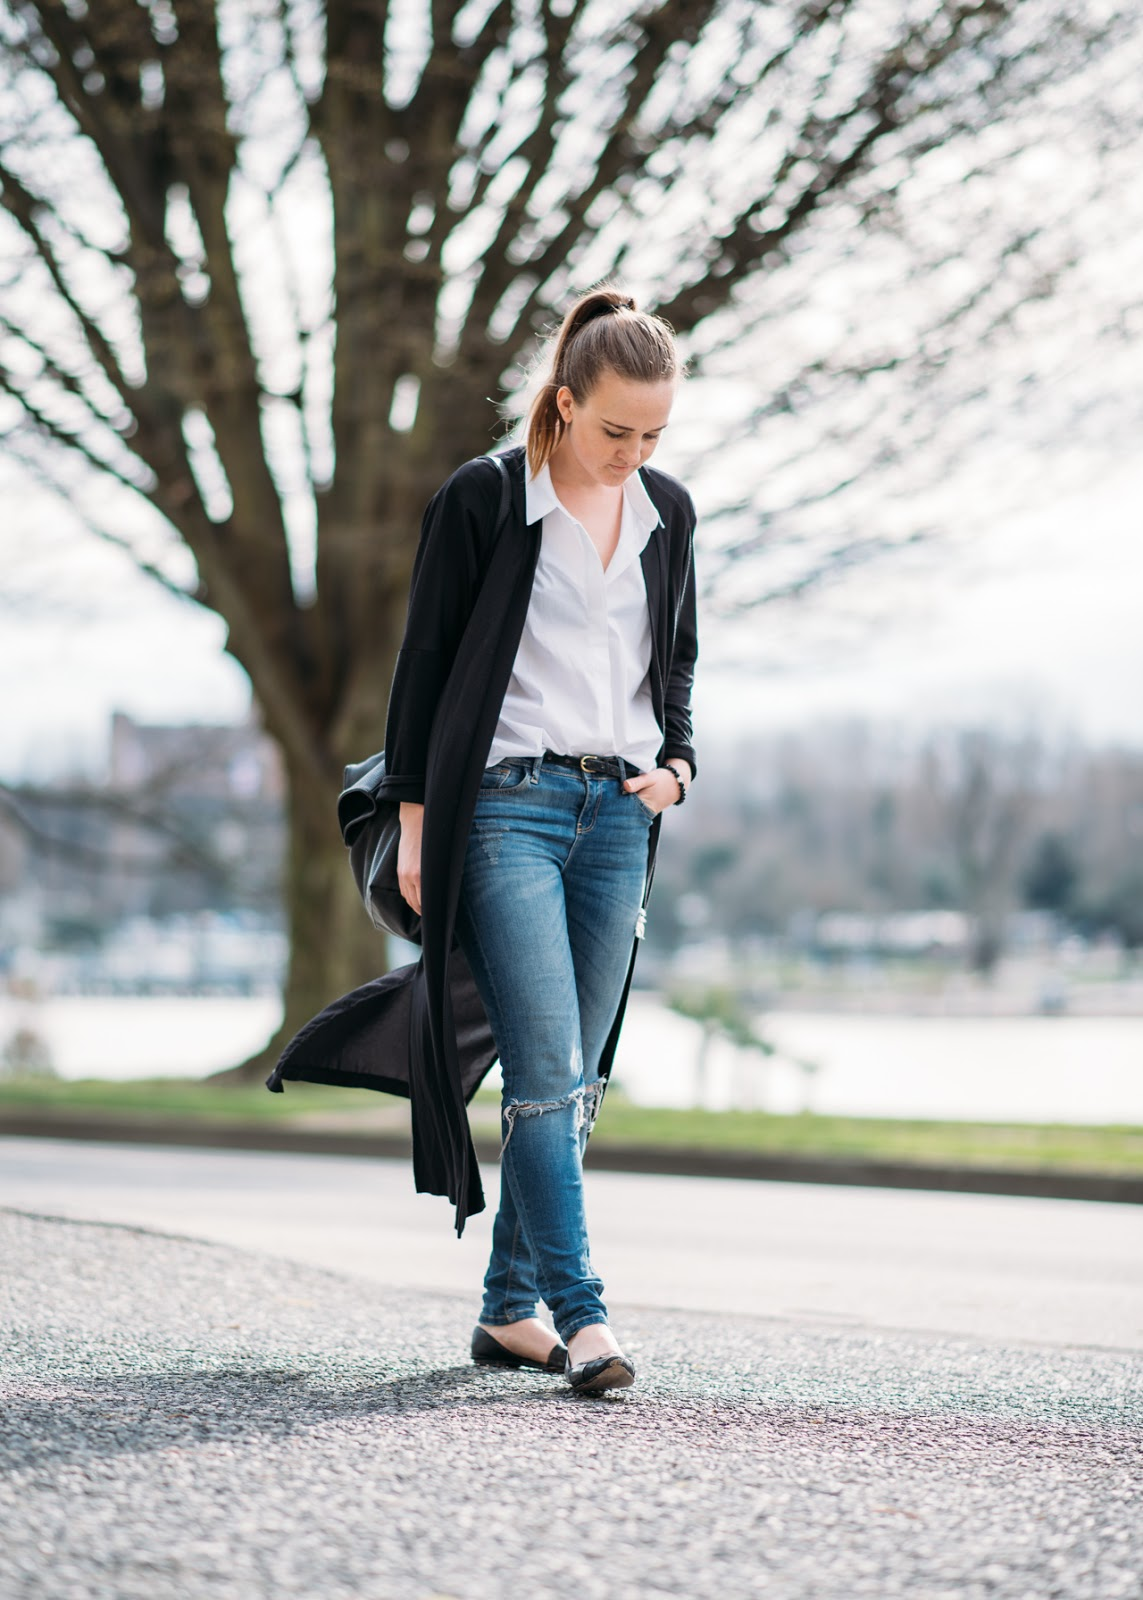 Fashion and Personal Style Blogger - Spring outfit